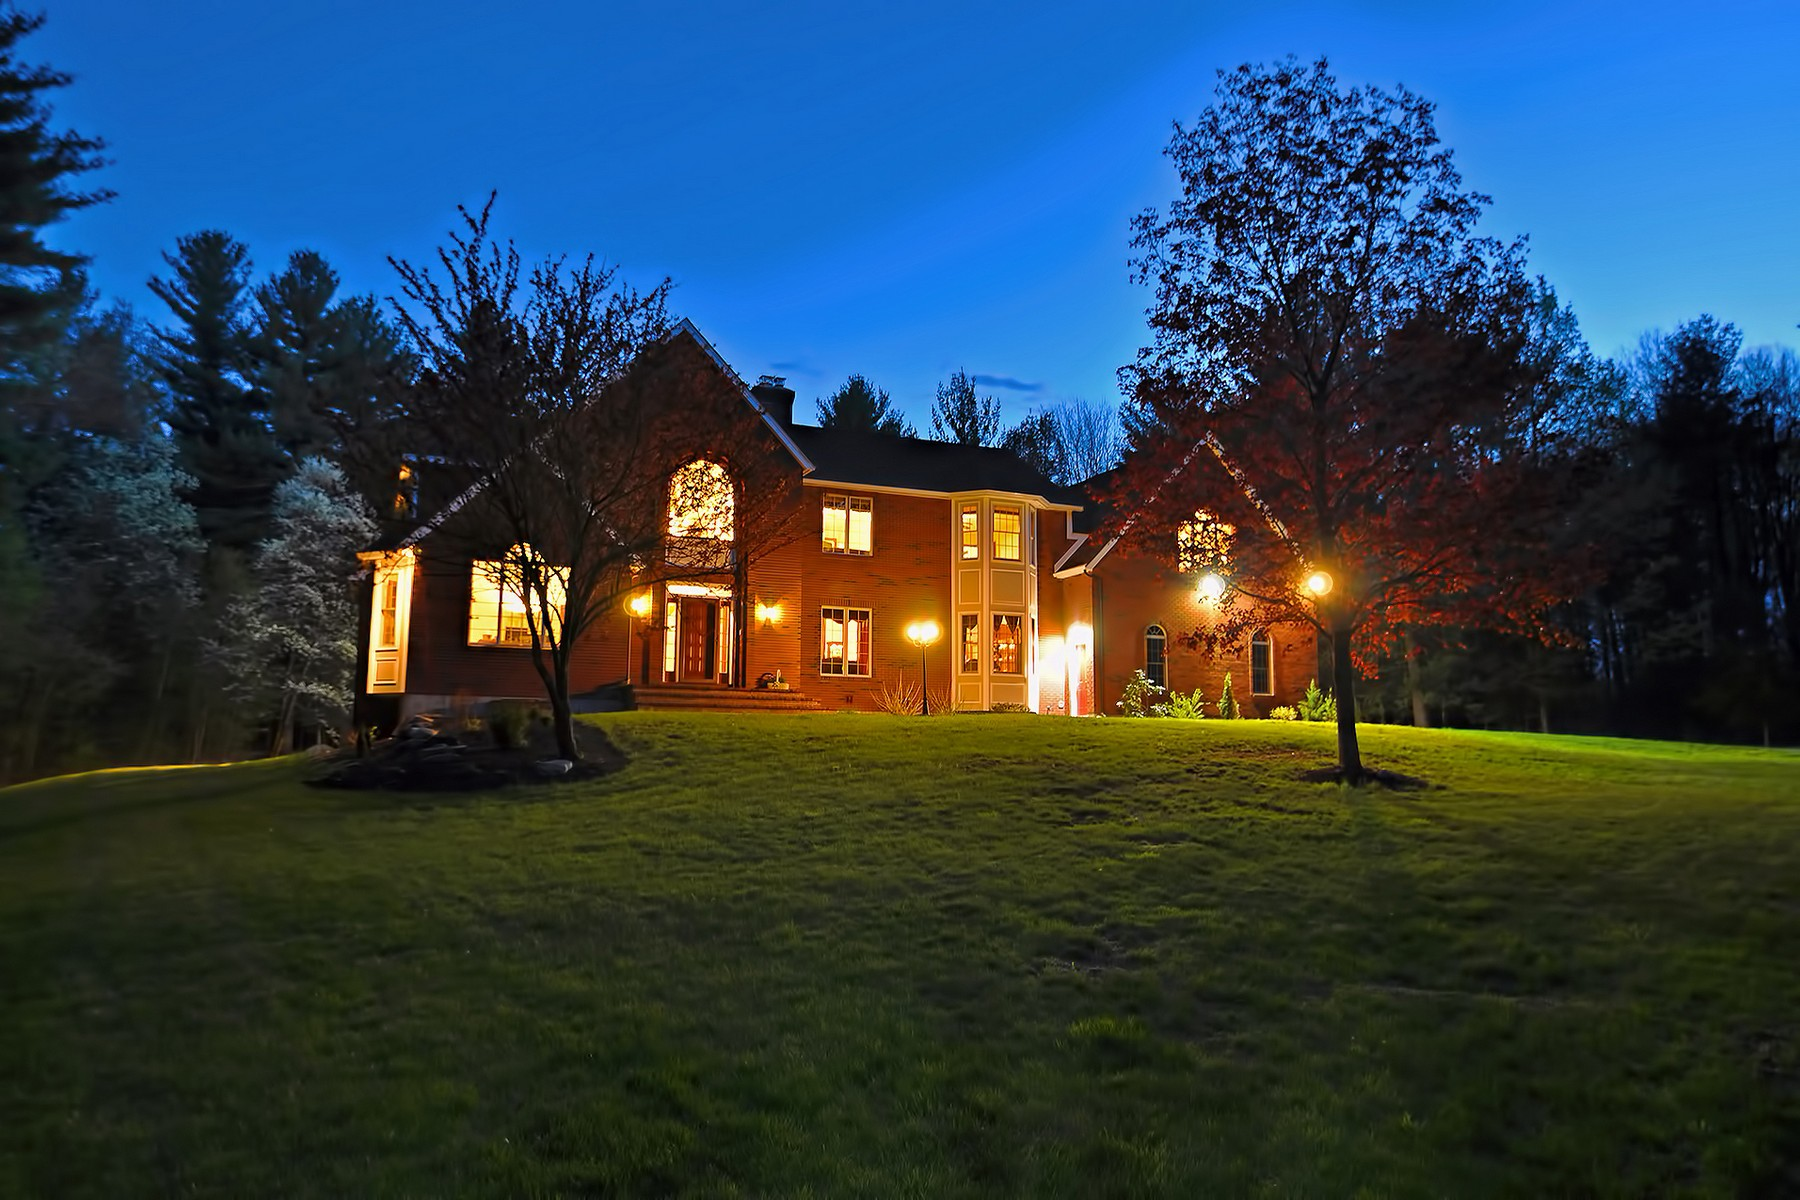 Casa Unifamiliar por un Venta en Stately Colonial 261 Green St Northborough, Massachusetts 01516 Estados Unidos